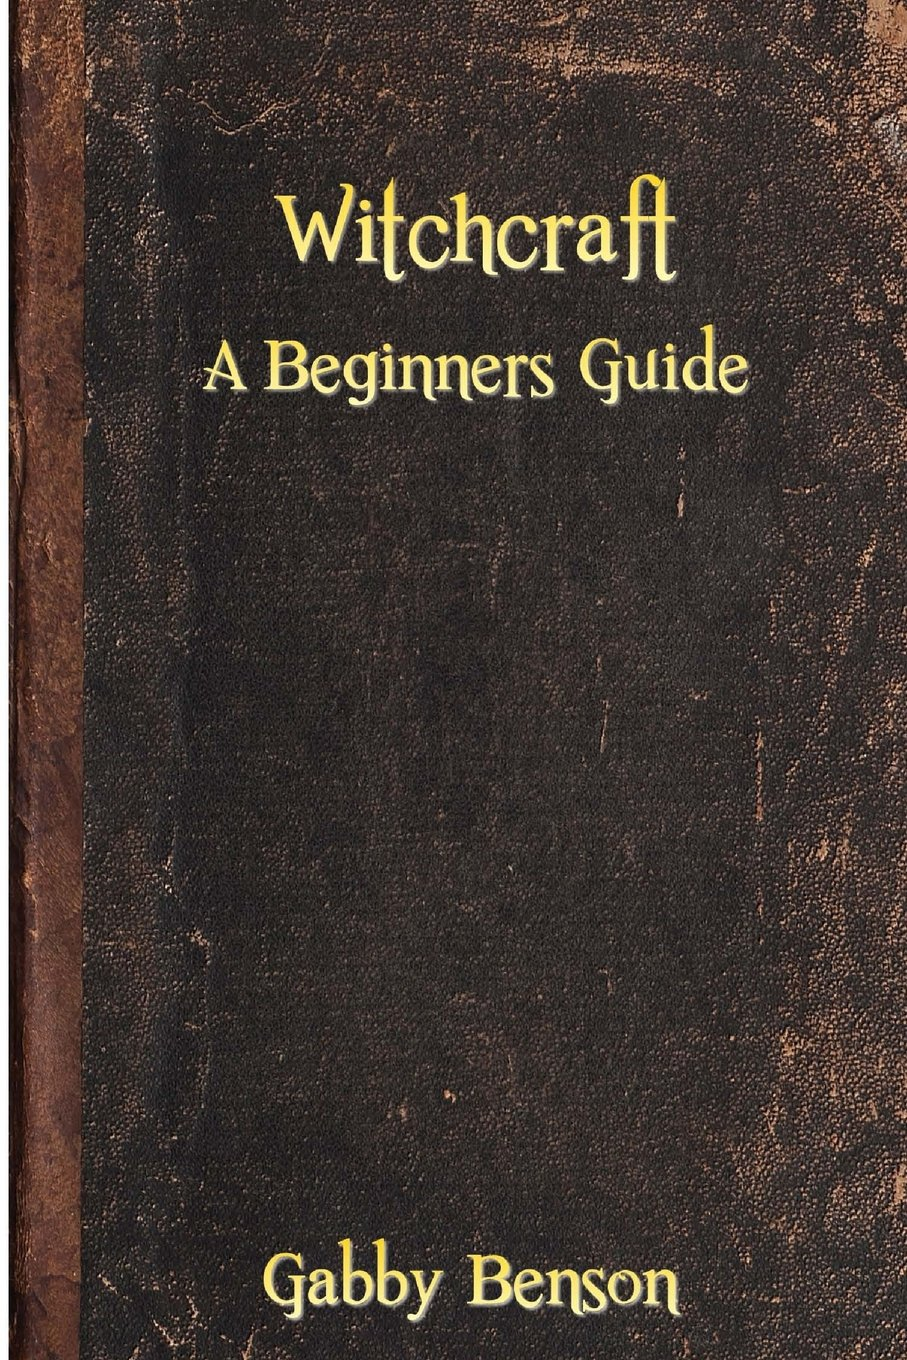 Witchcraft: A Beginners Guide to Witchcraft: Gabby Benson